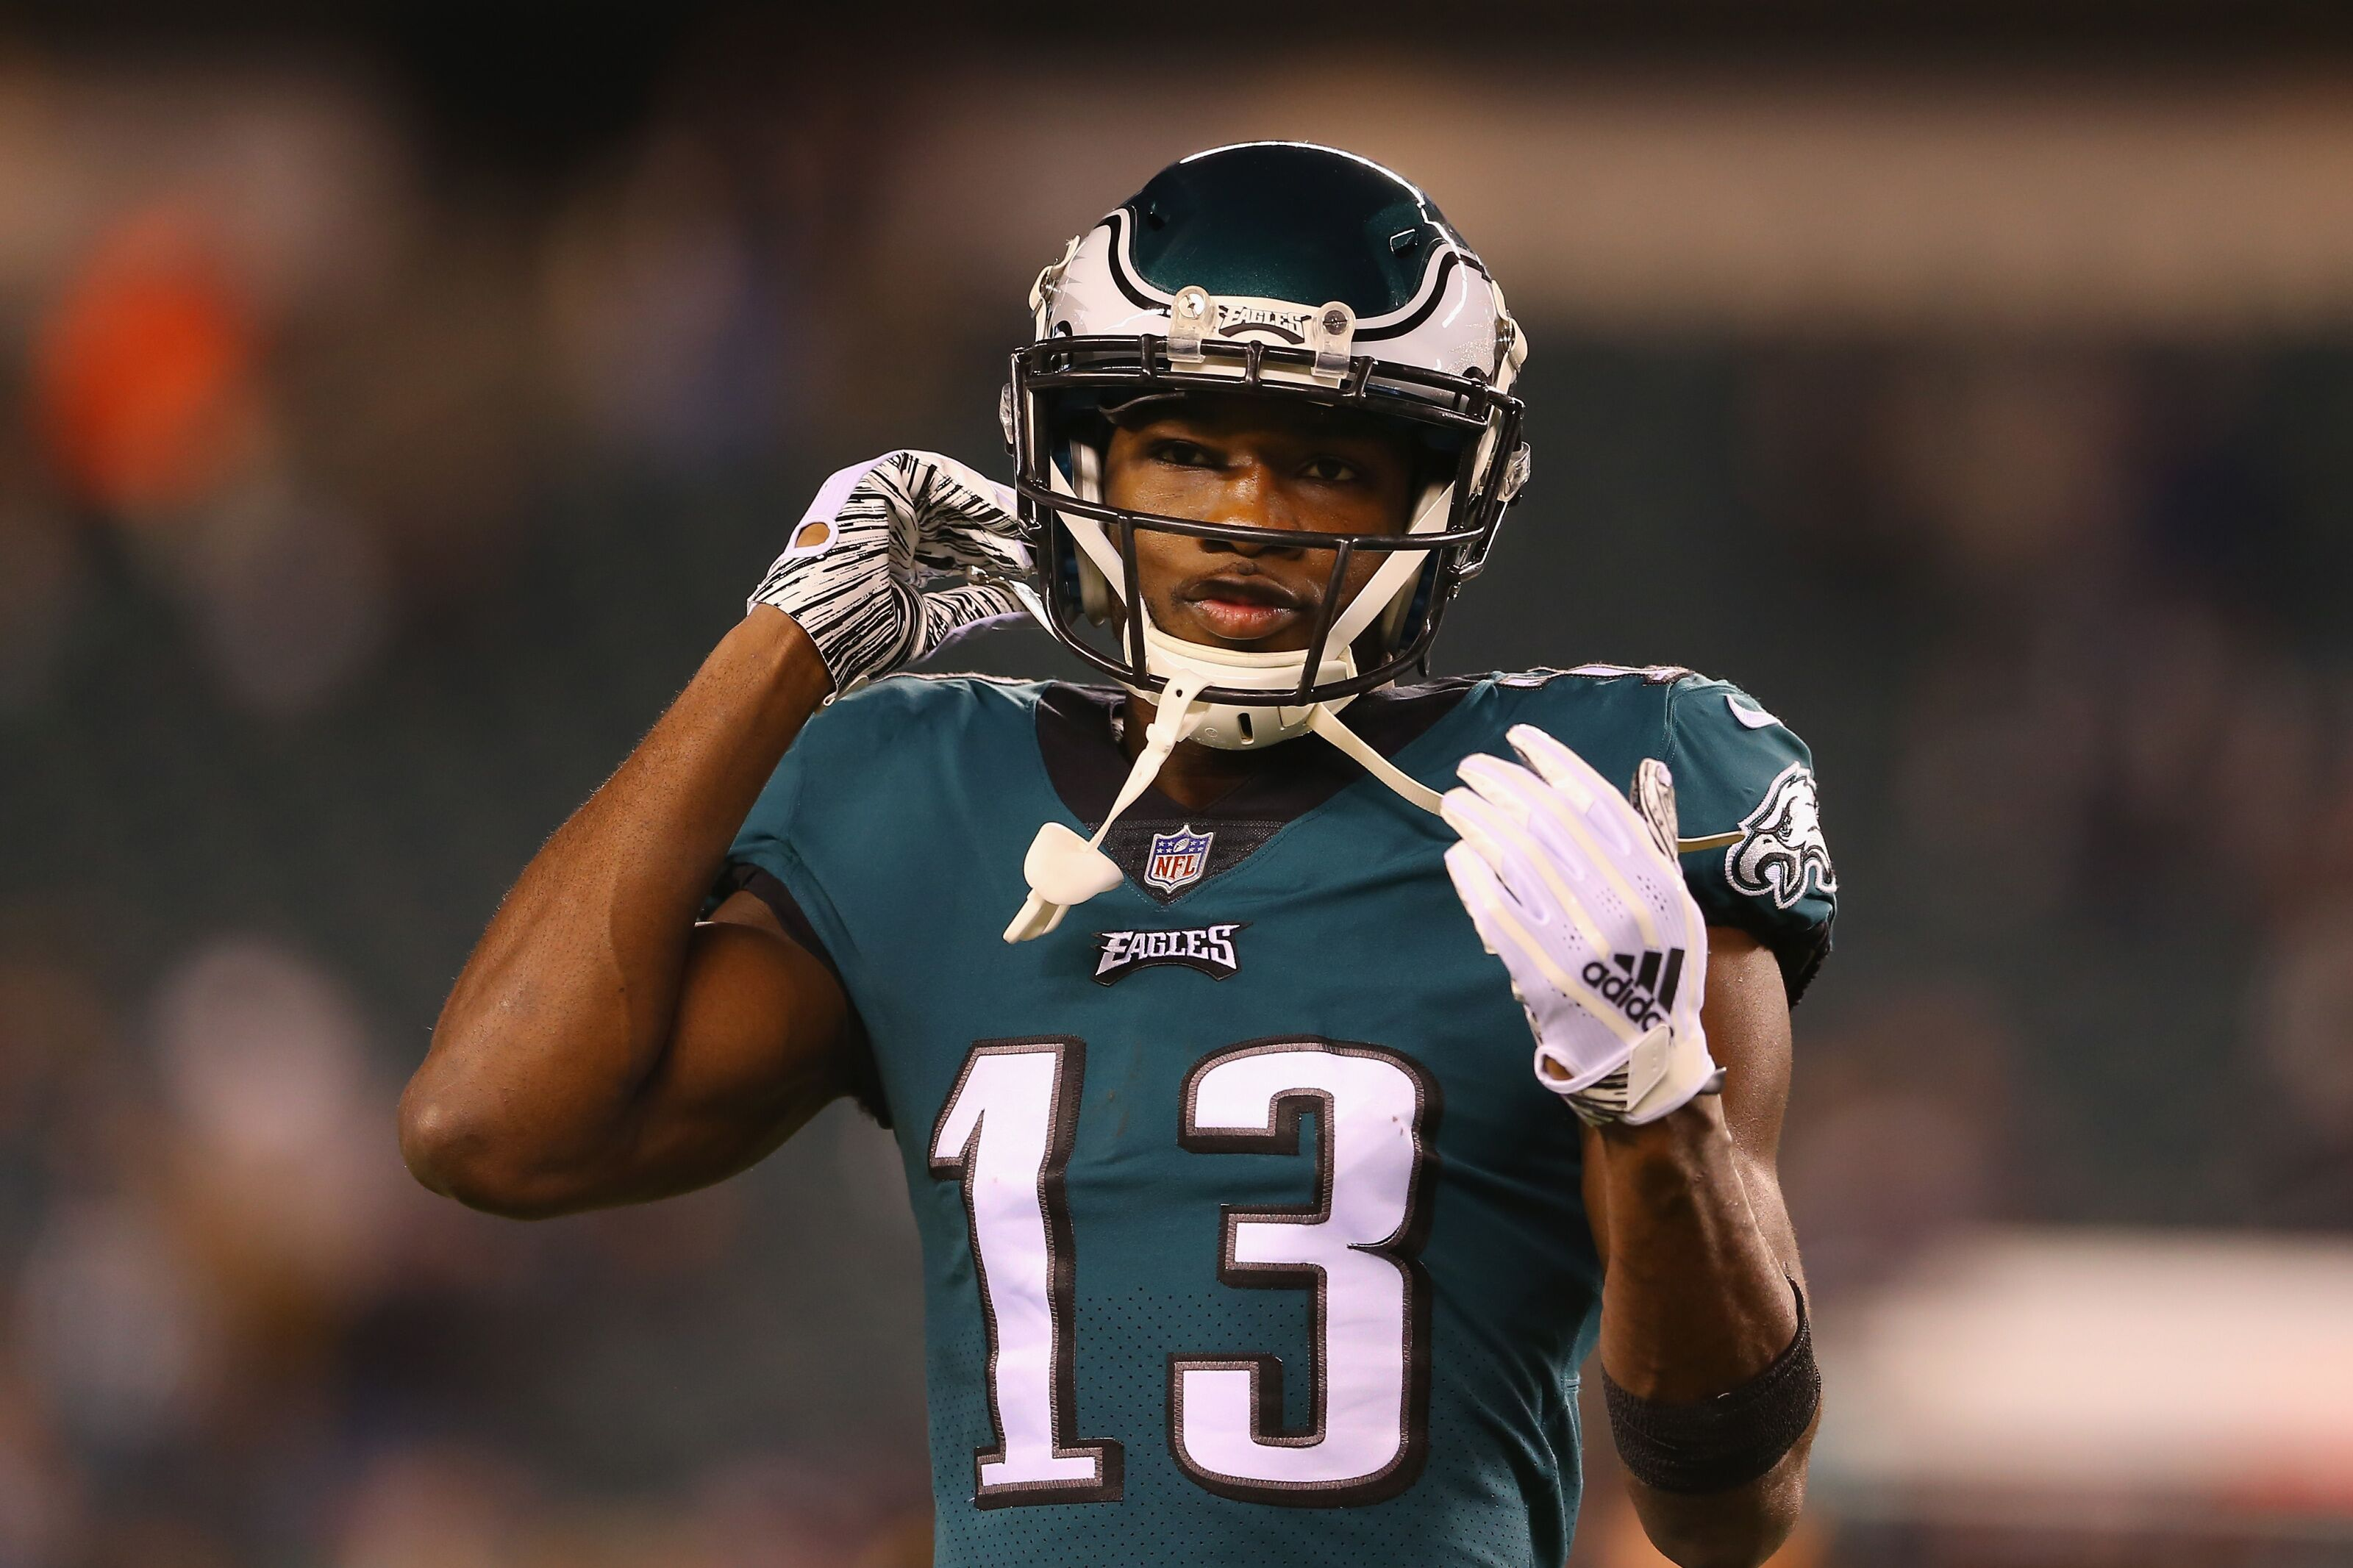 20 Philadelphia Eagles who could potentially become free agents in 2020